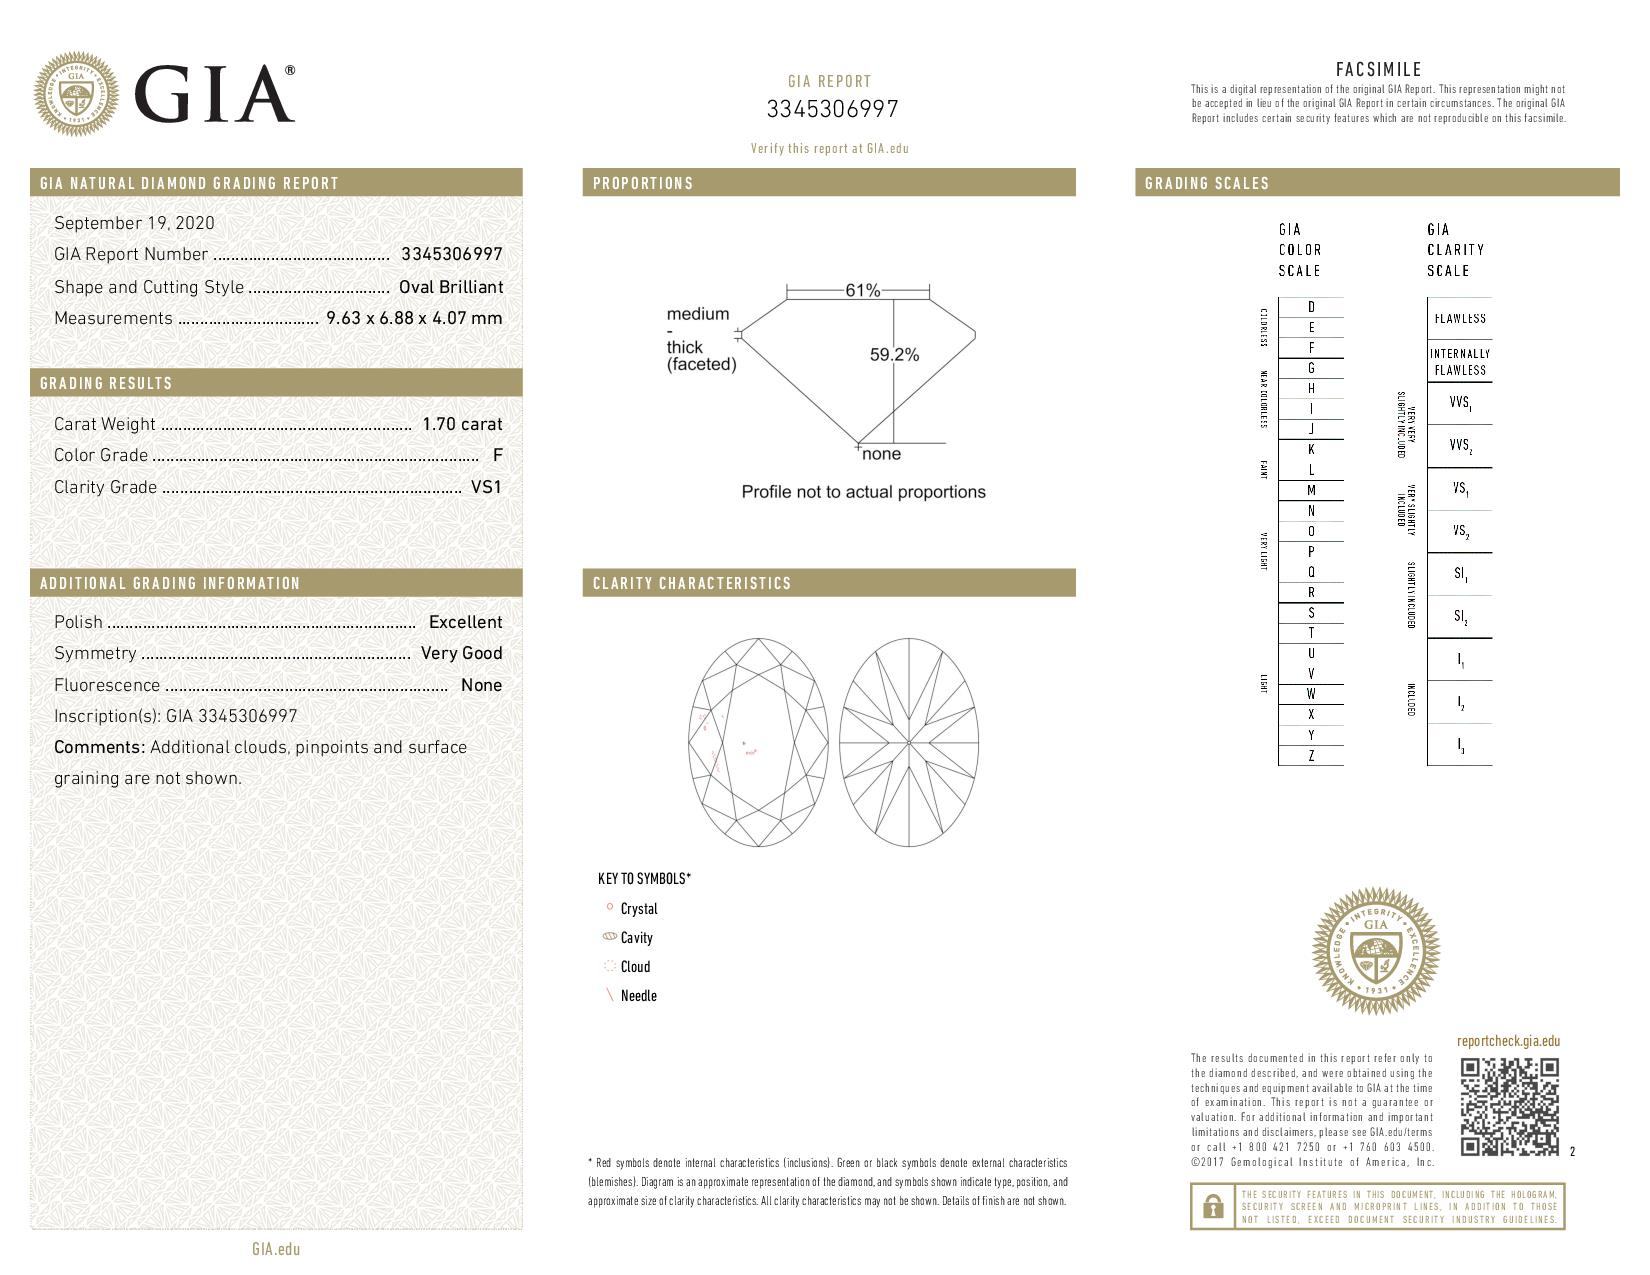 This is a 1.70 carat oval shape, F color, VS1 clarity natural diamond accompanied by a GIA grading report.